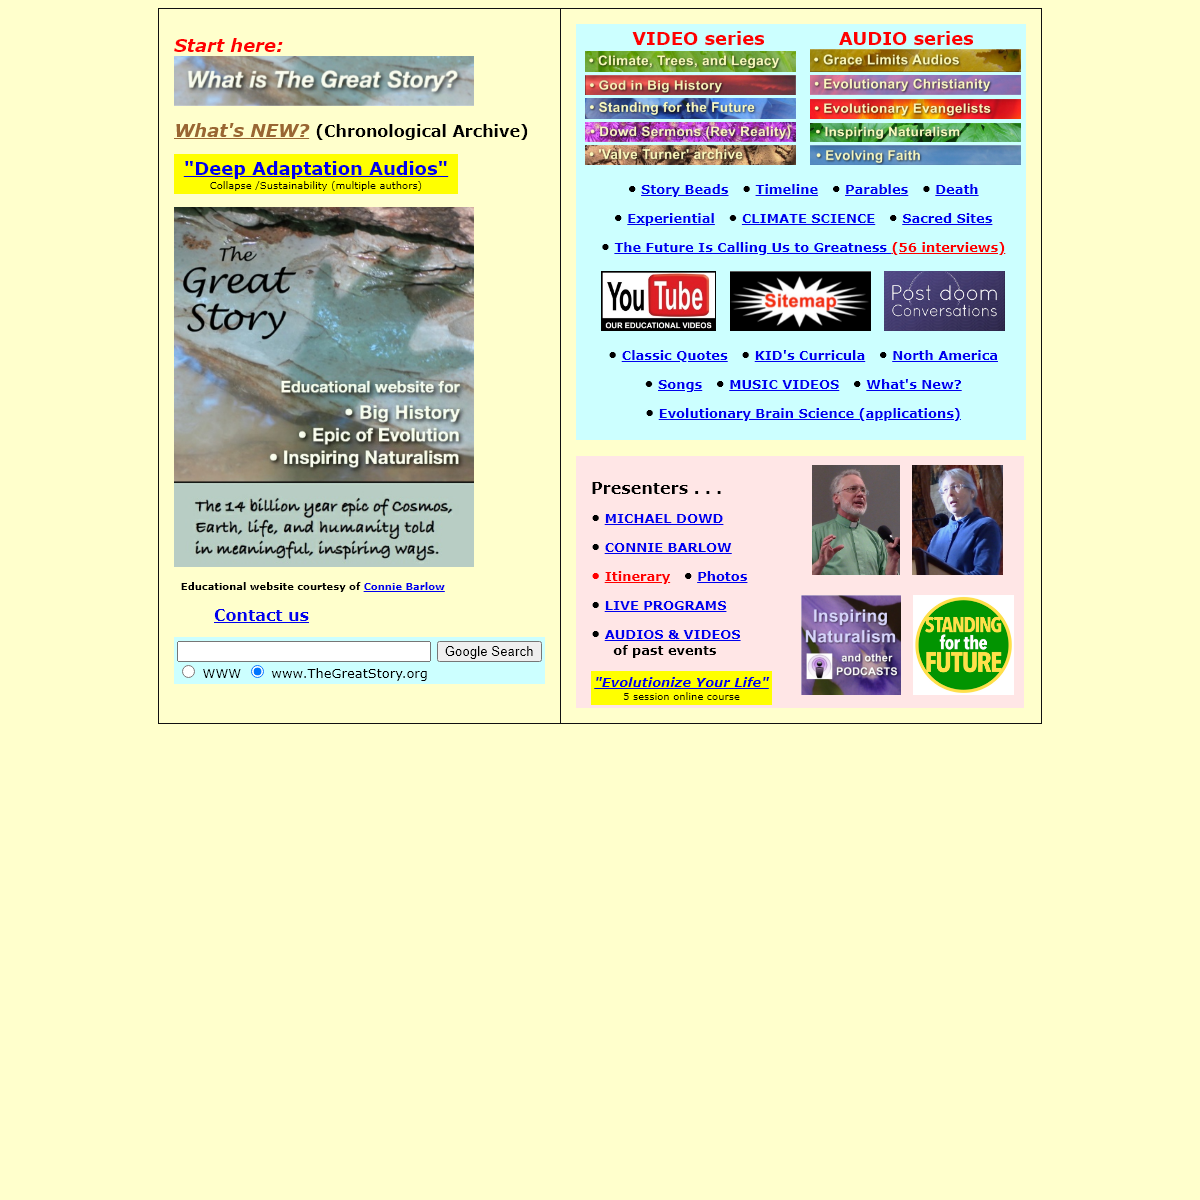 The Great Story Website created by Connie Barlow